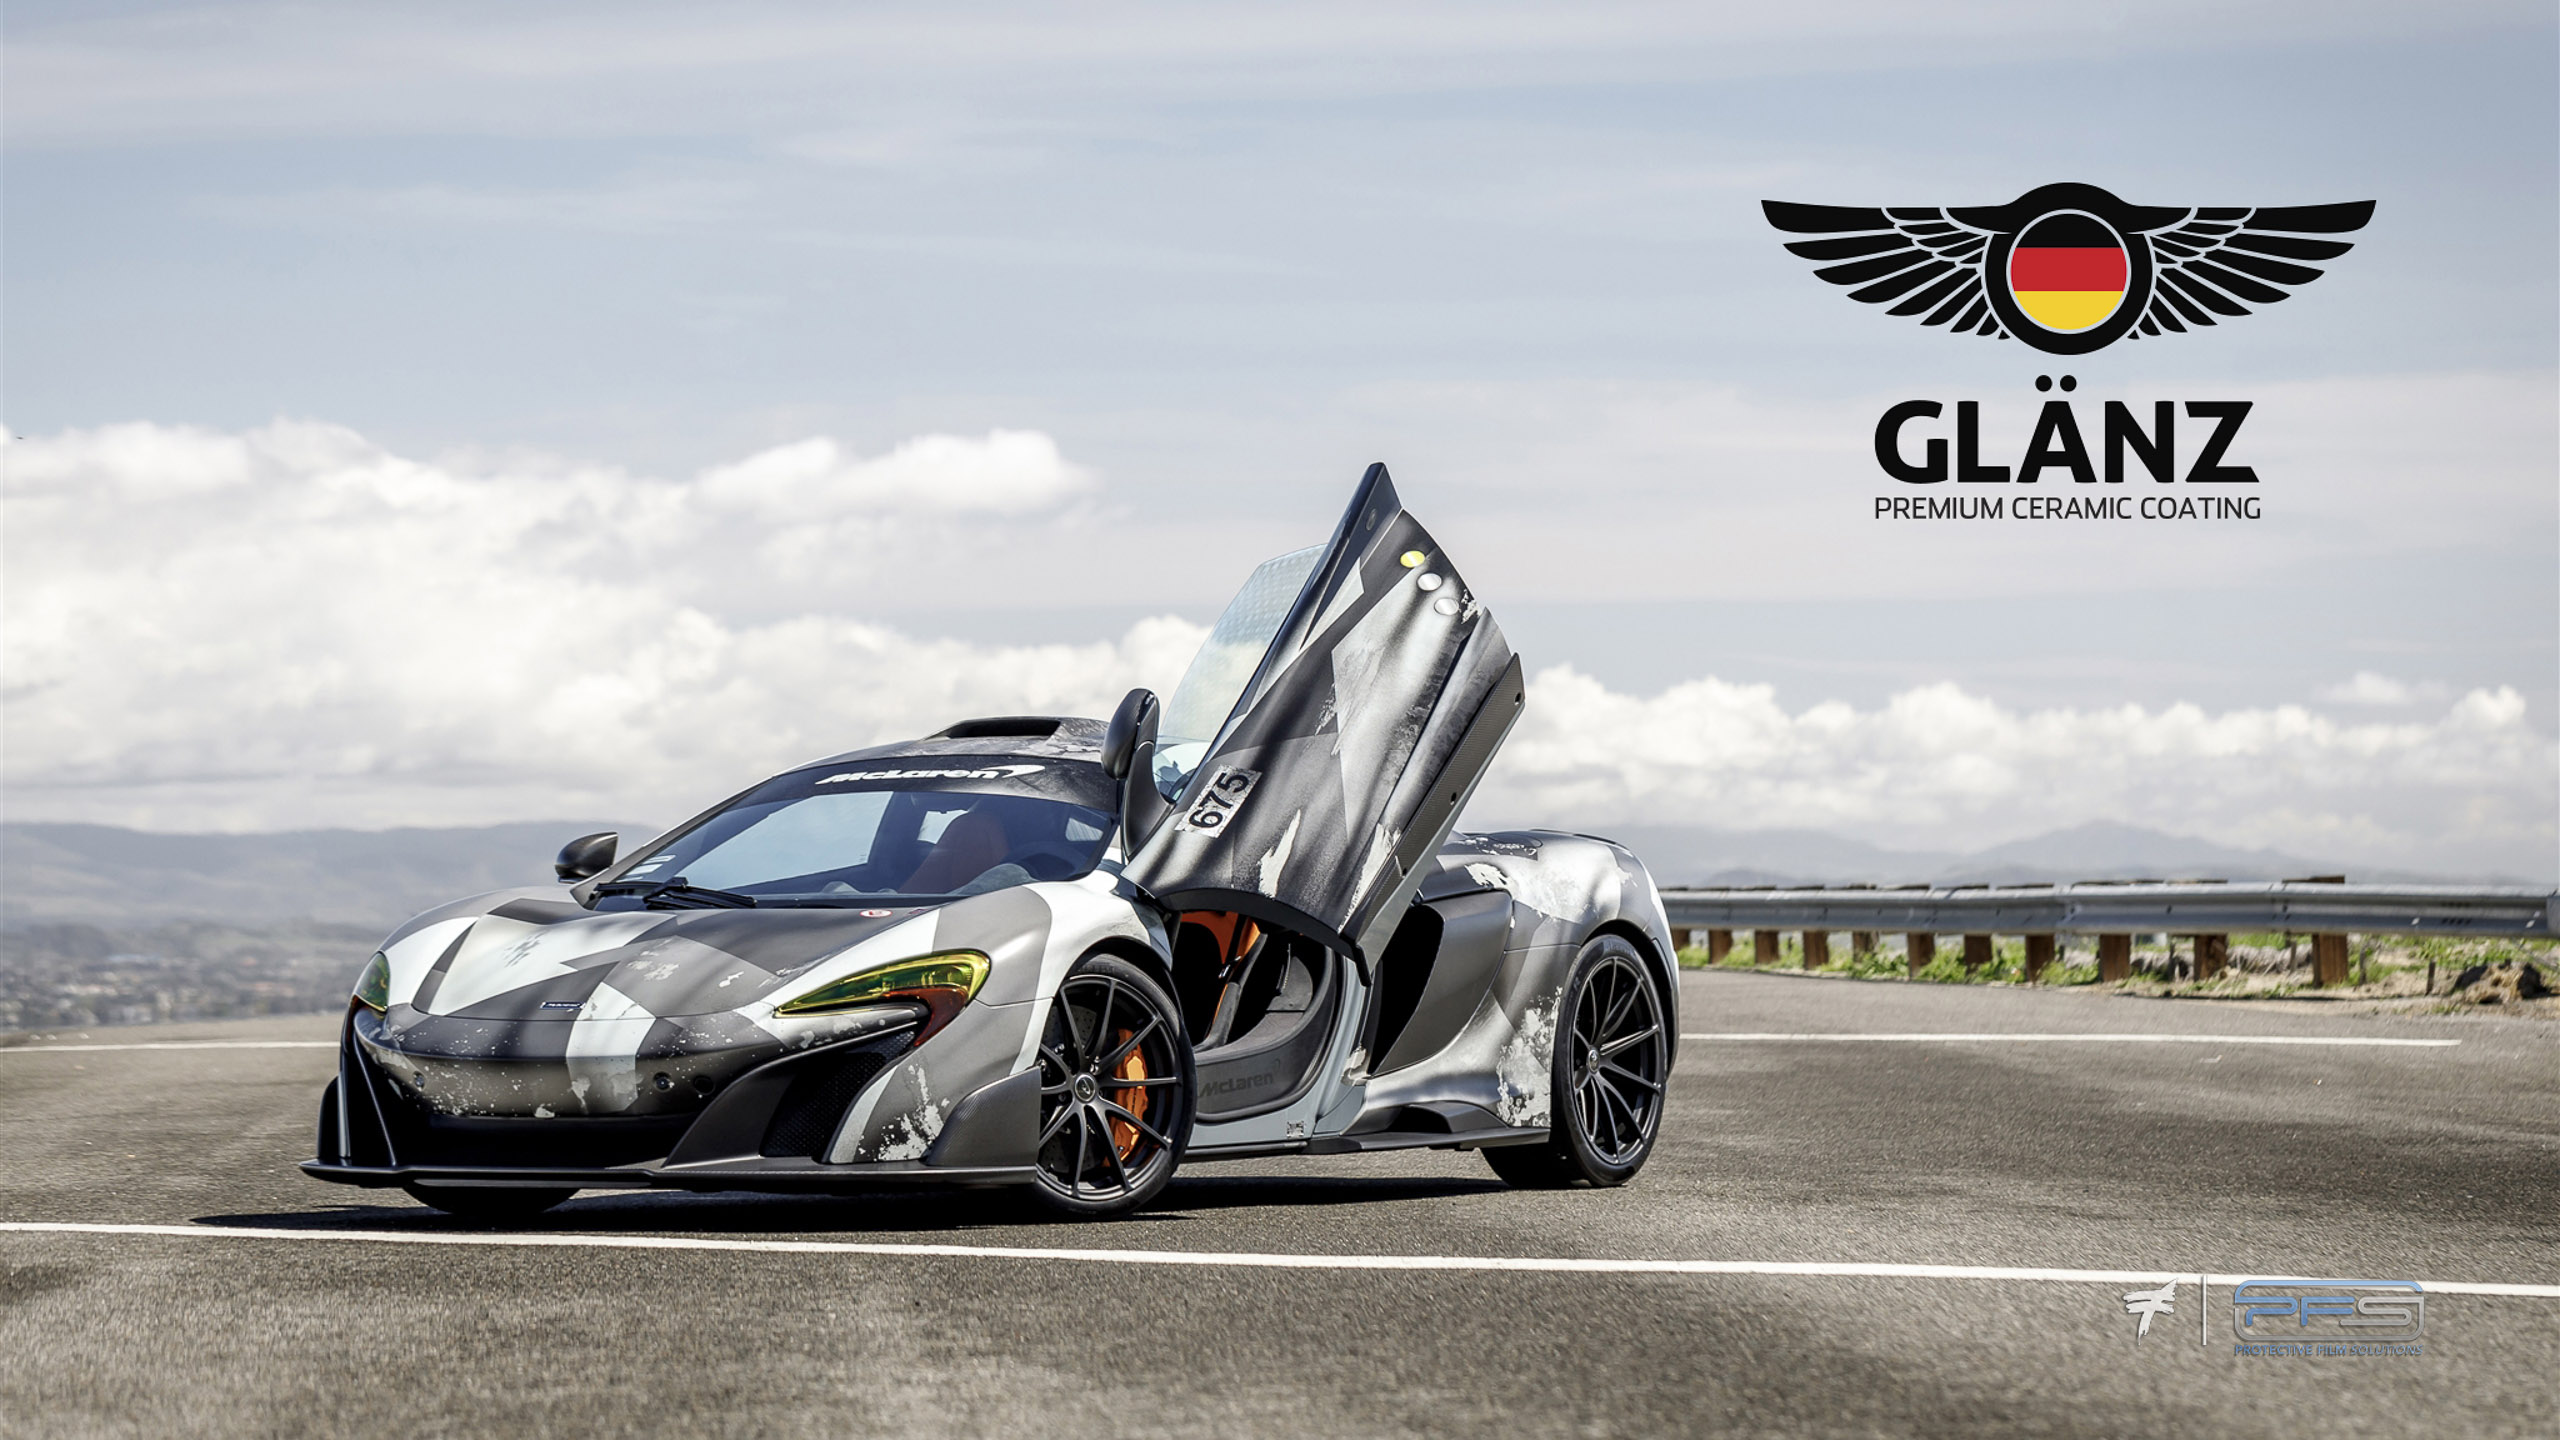 Glanz Premium Ceramic Coating McLaren 675LT - PFS